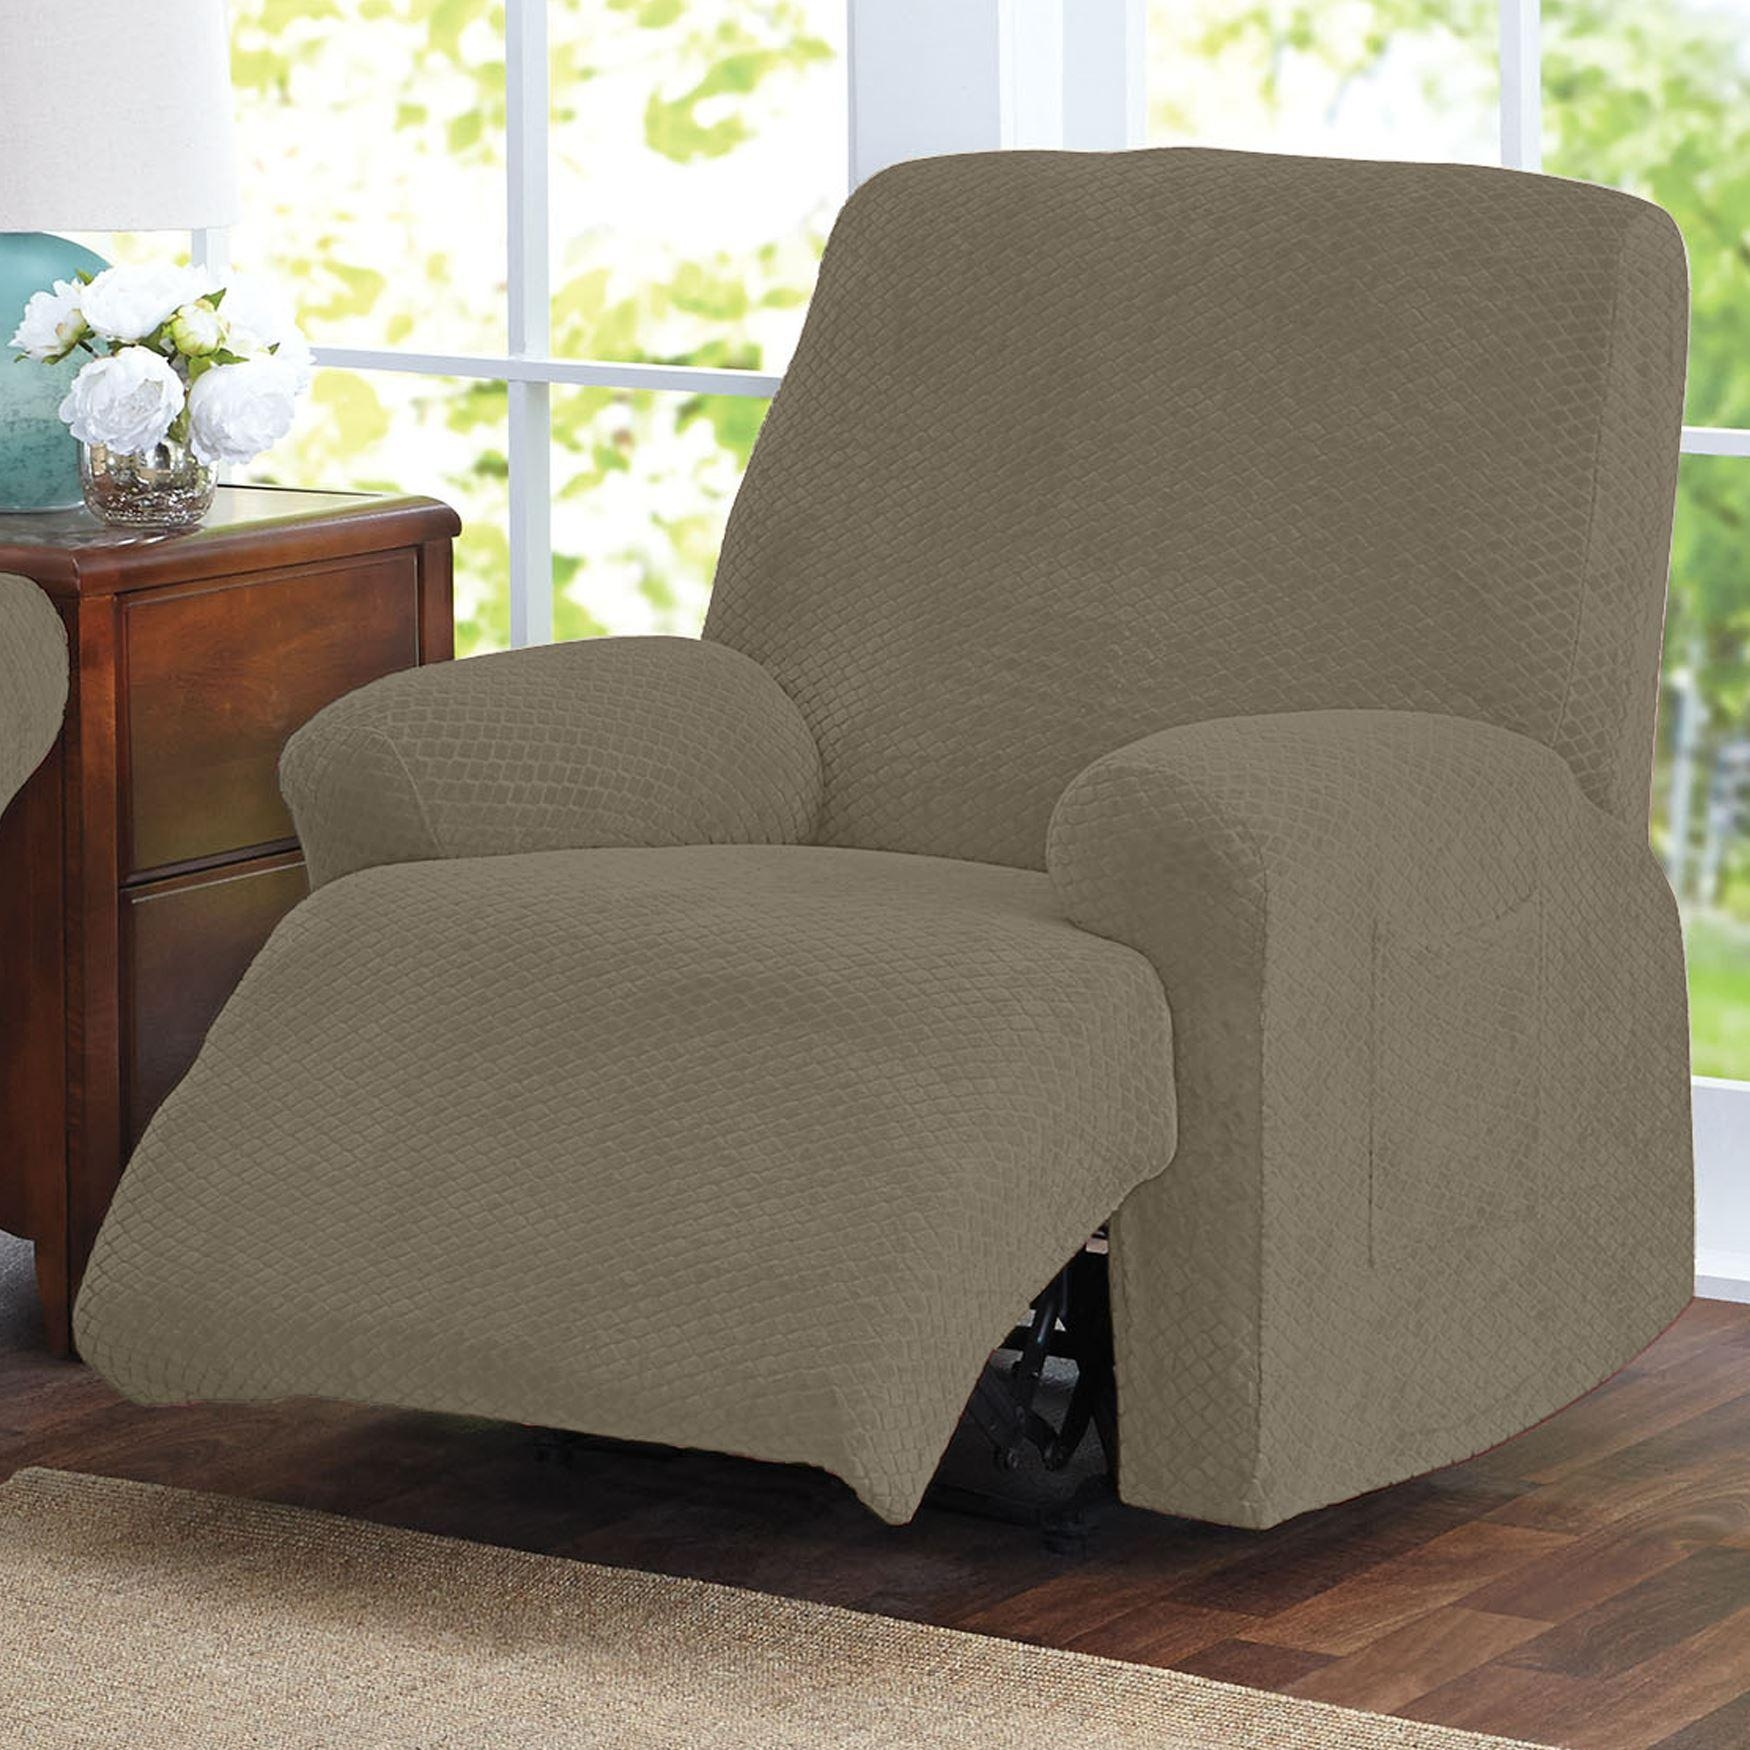 Furniture: Sofa Recliner Covers | Couch Covers For Reclining Sofas Intended For Slipcover For Reclining Sofas (Image 9 of 20)